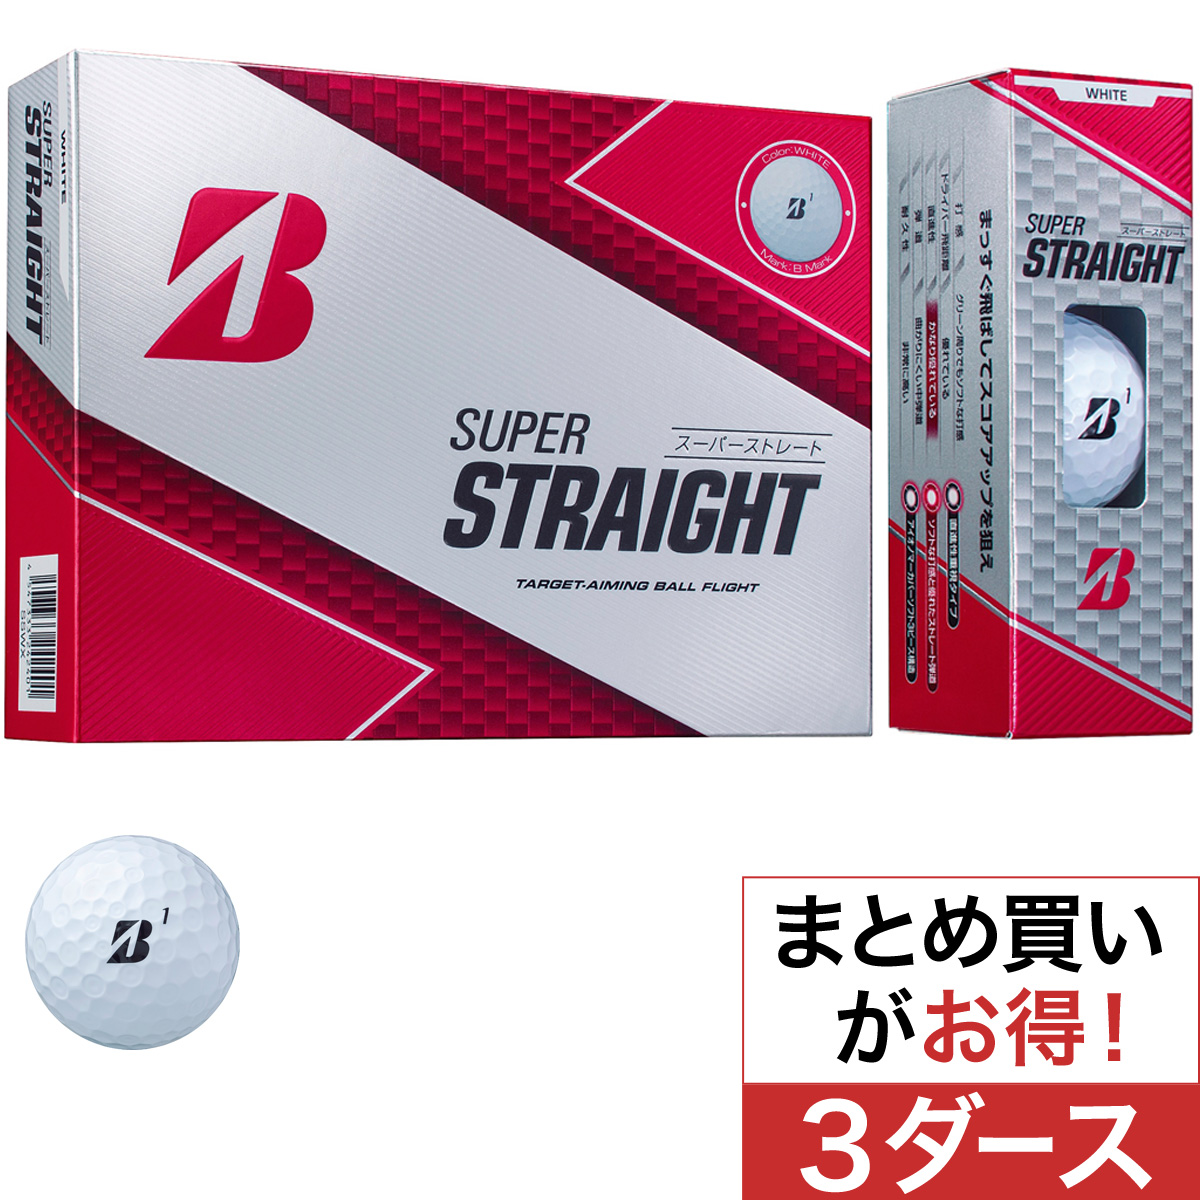 SUPER STRAIGHT ボール 3ダースセット